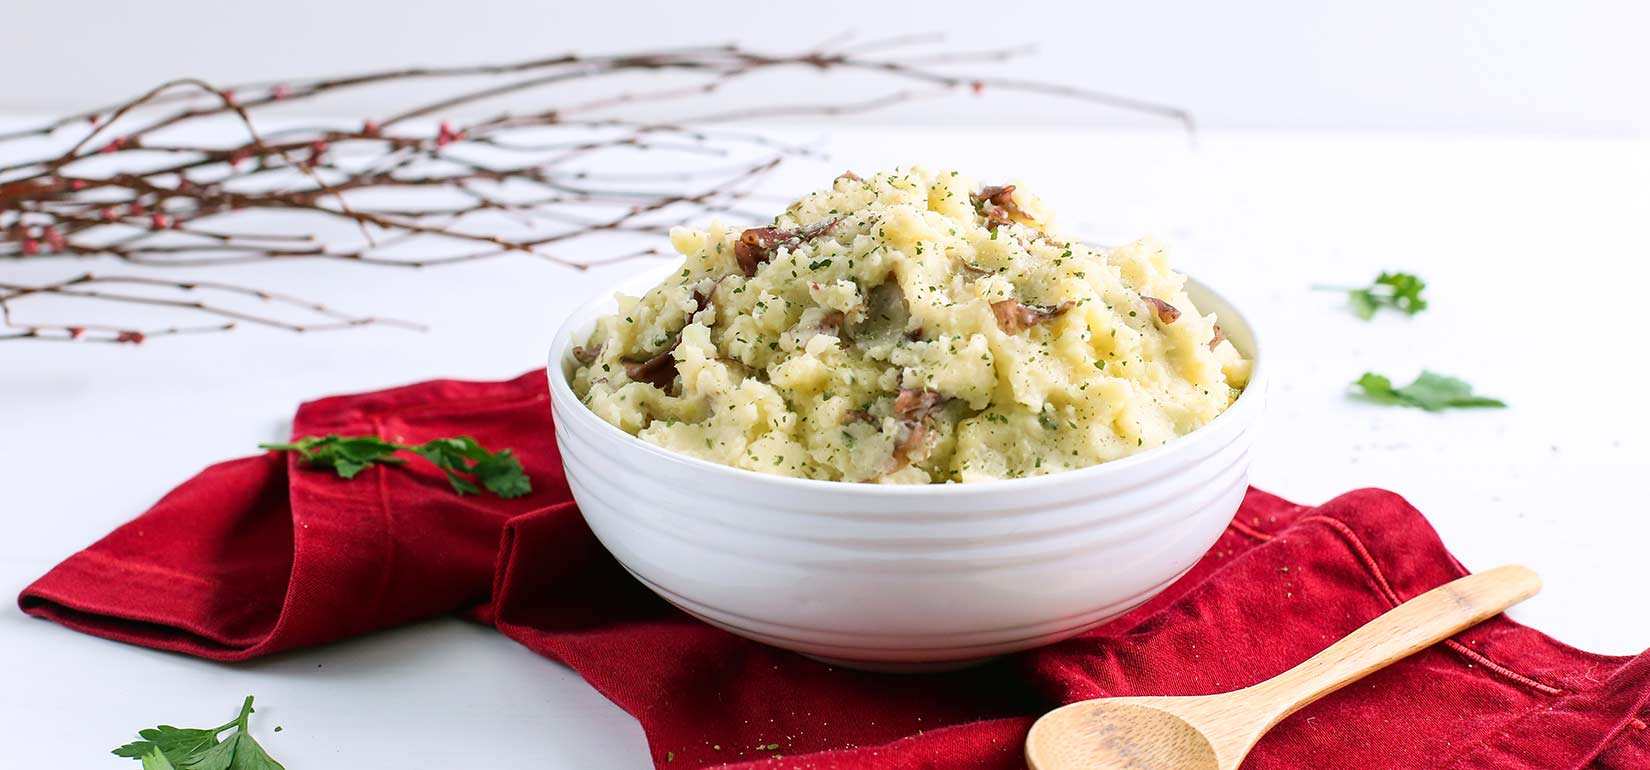 Simply Organic Holiday Organic Parsley and Garlic Mashed Potatoes Recipe